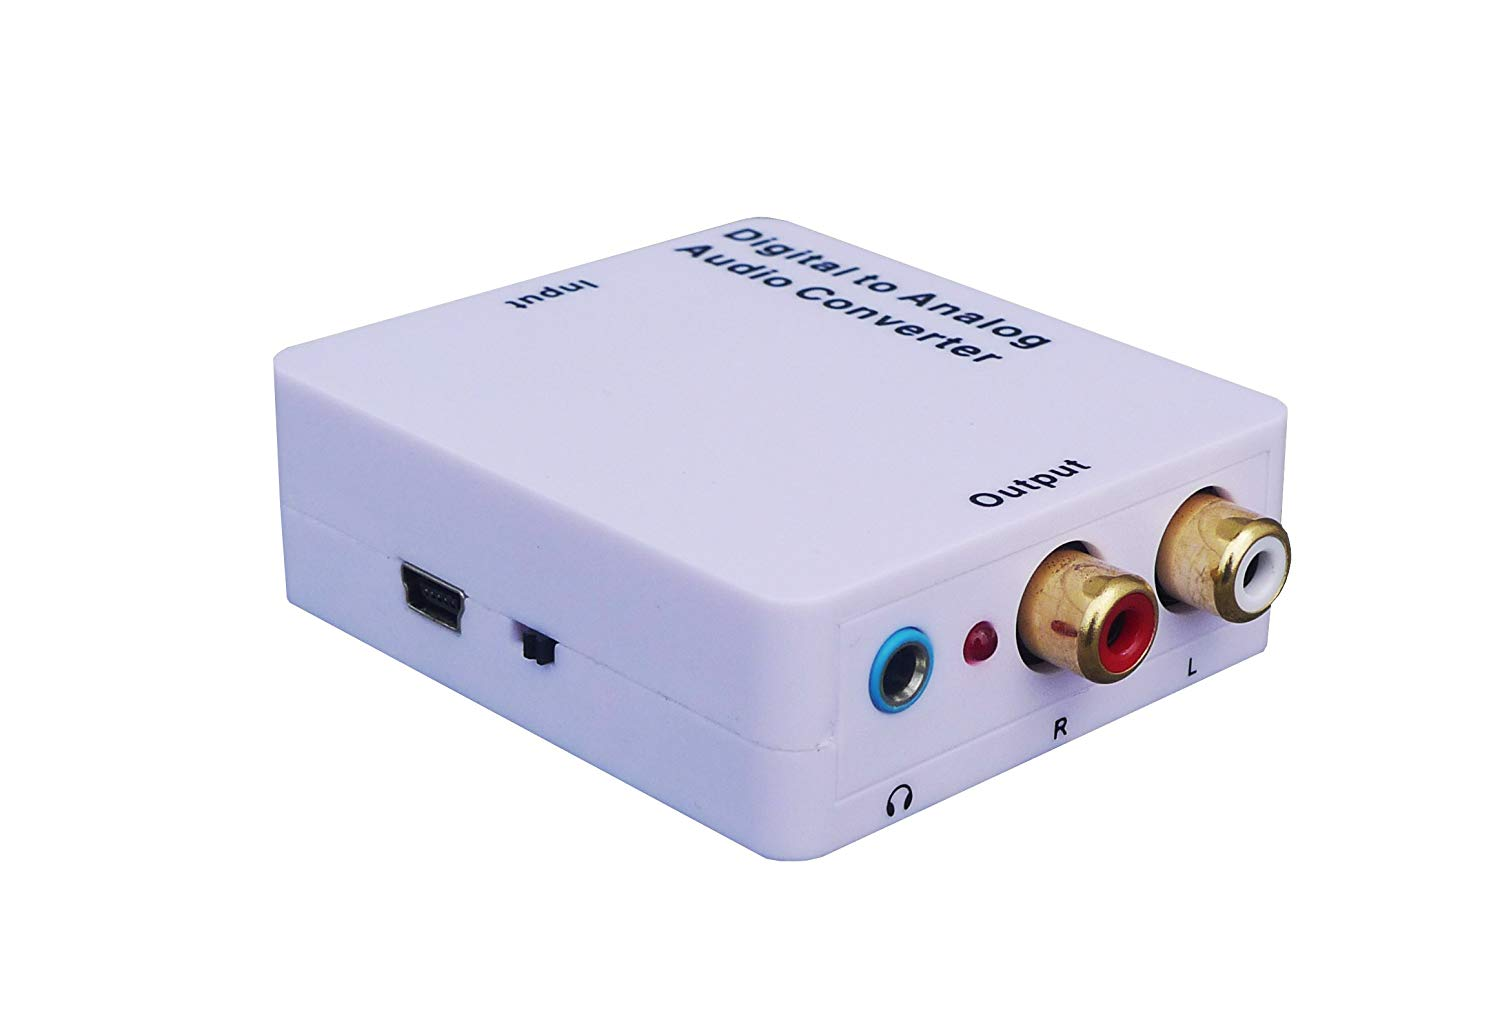 hight resolution of get quotations weley digital to analog audio converter with phone jack convert coaxial or toslink digital audio